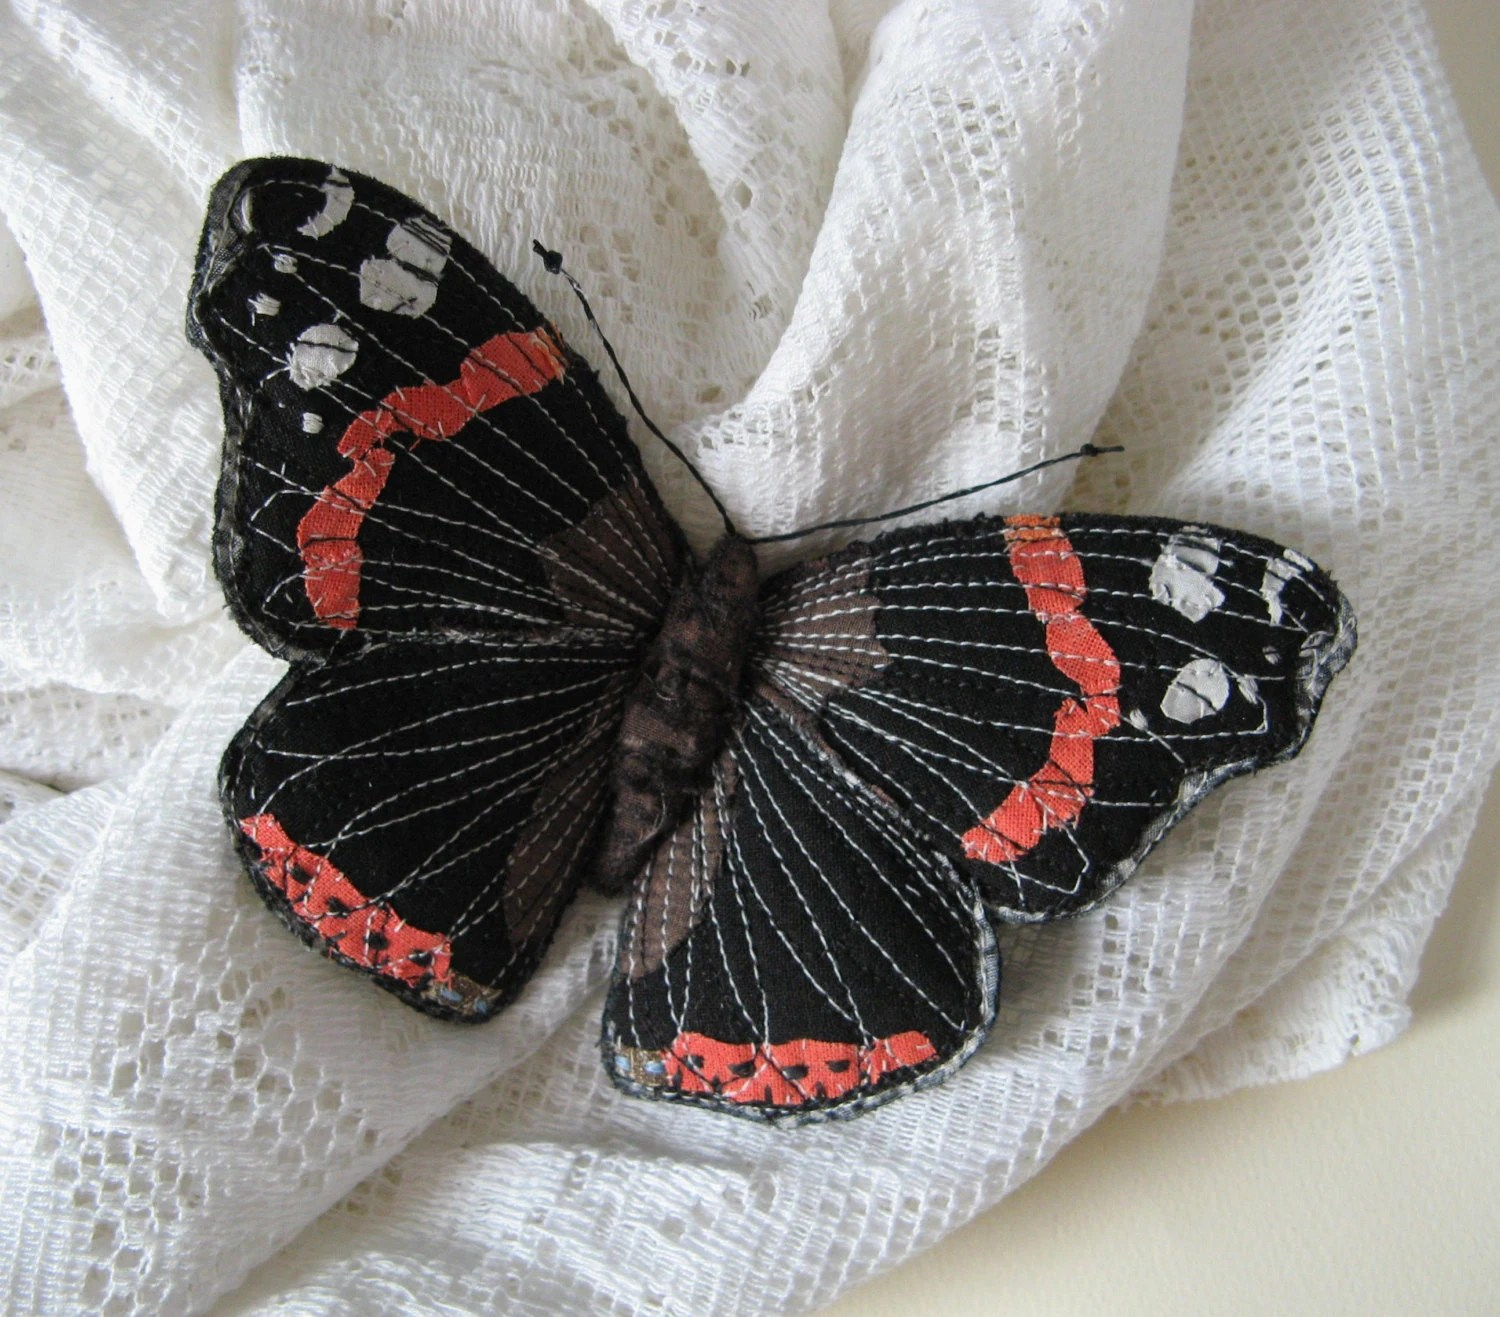 Embroidered butterfly brooch, 'Red Admiral', textile art, soft sculpture, cottage chic